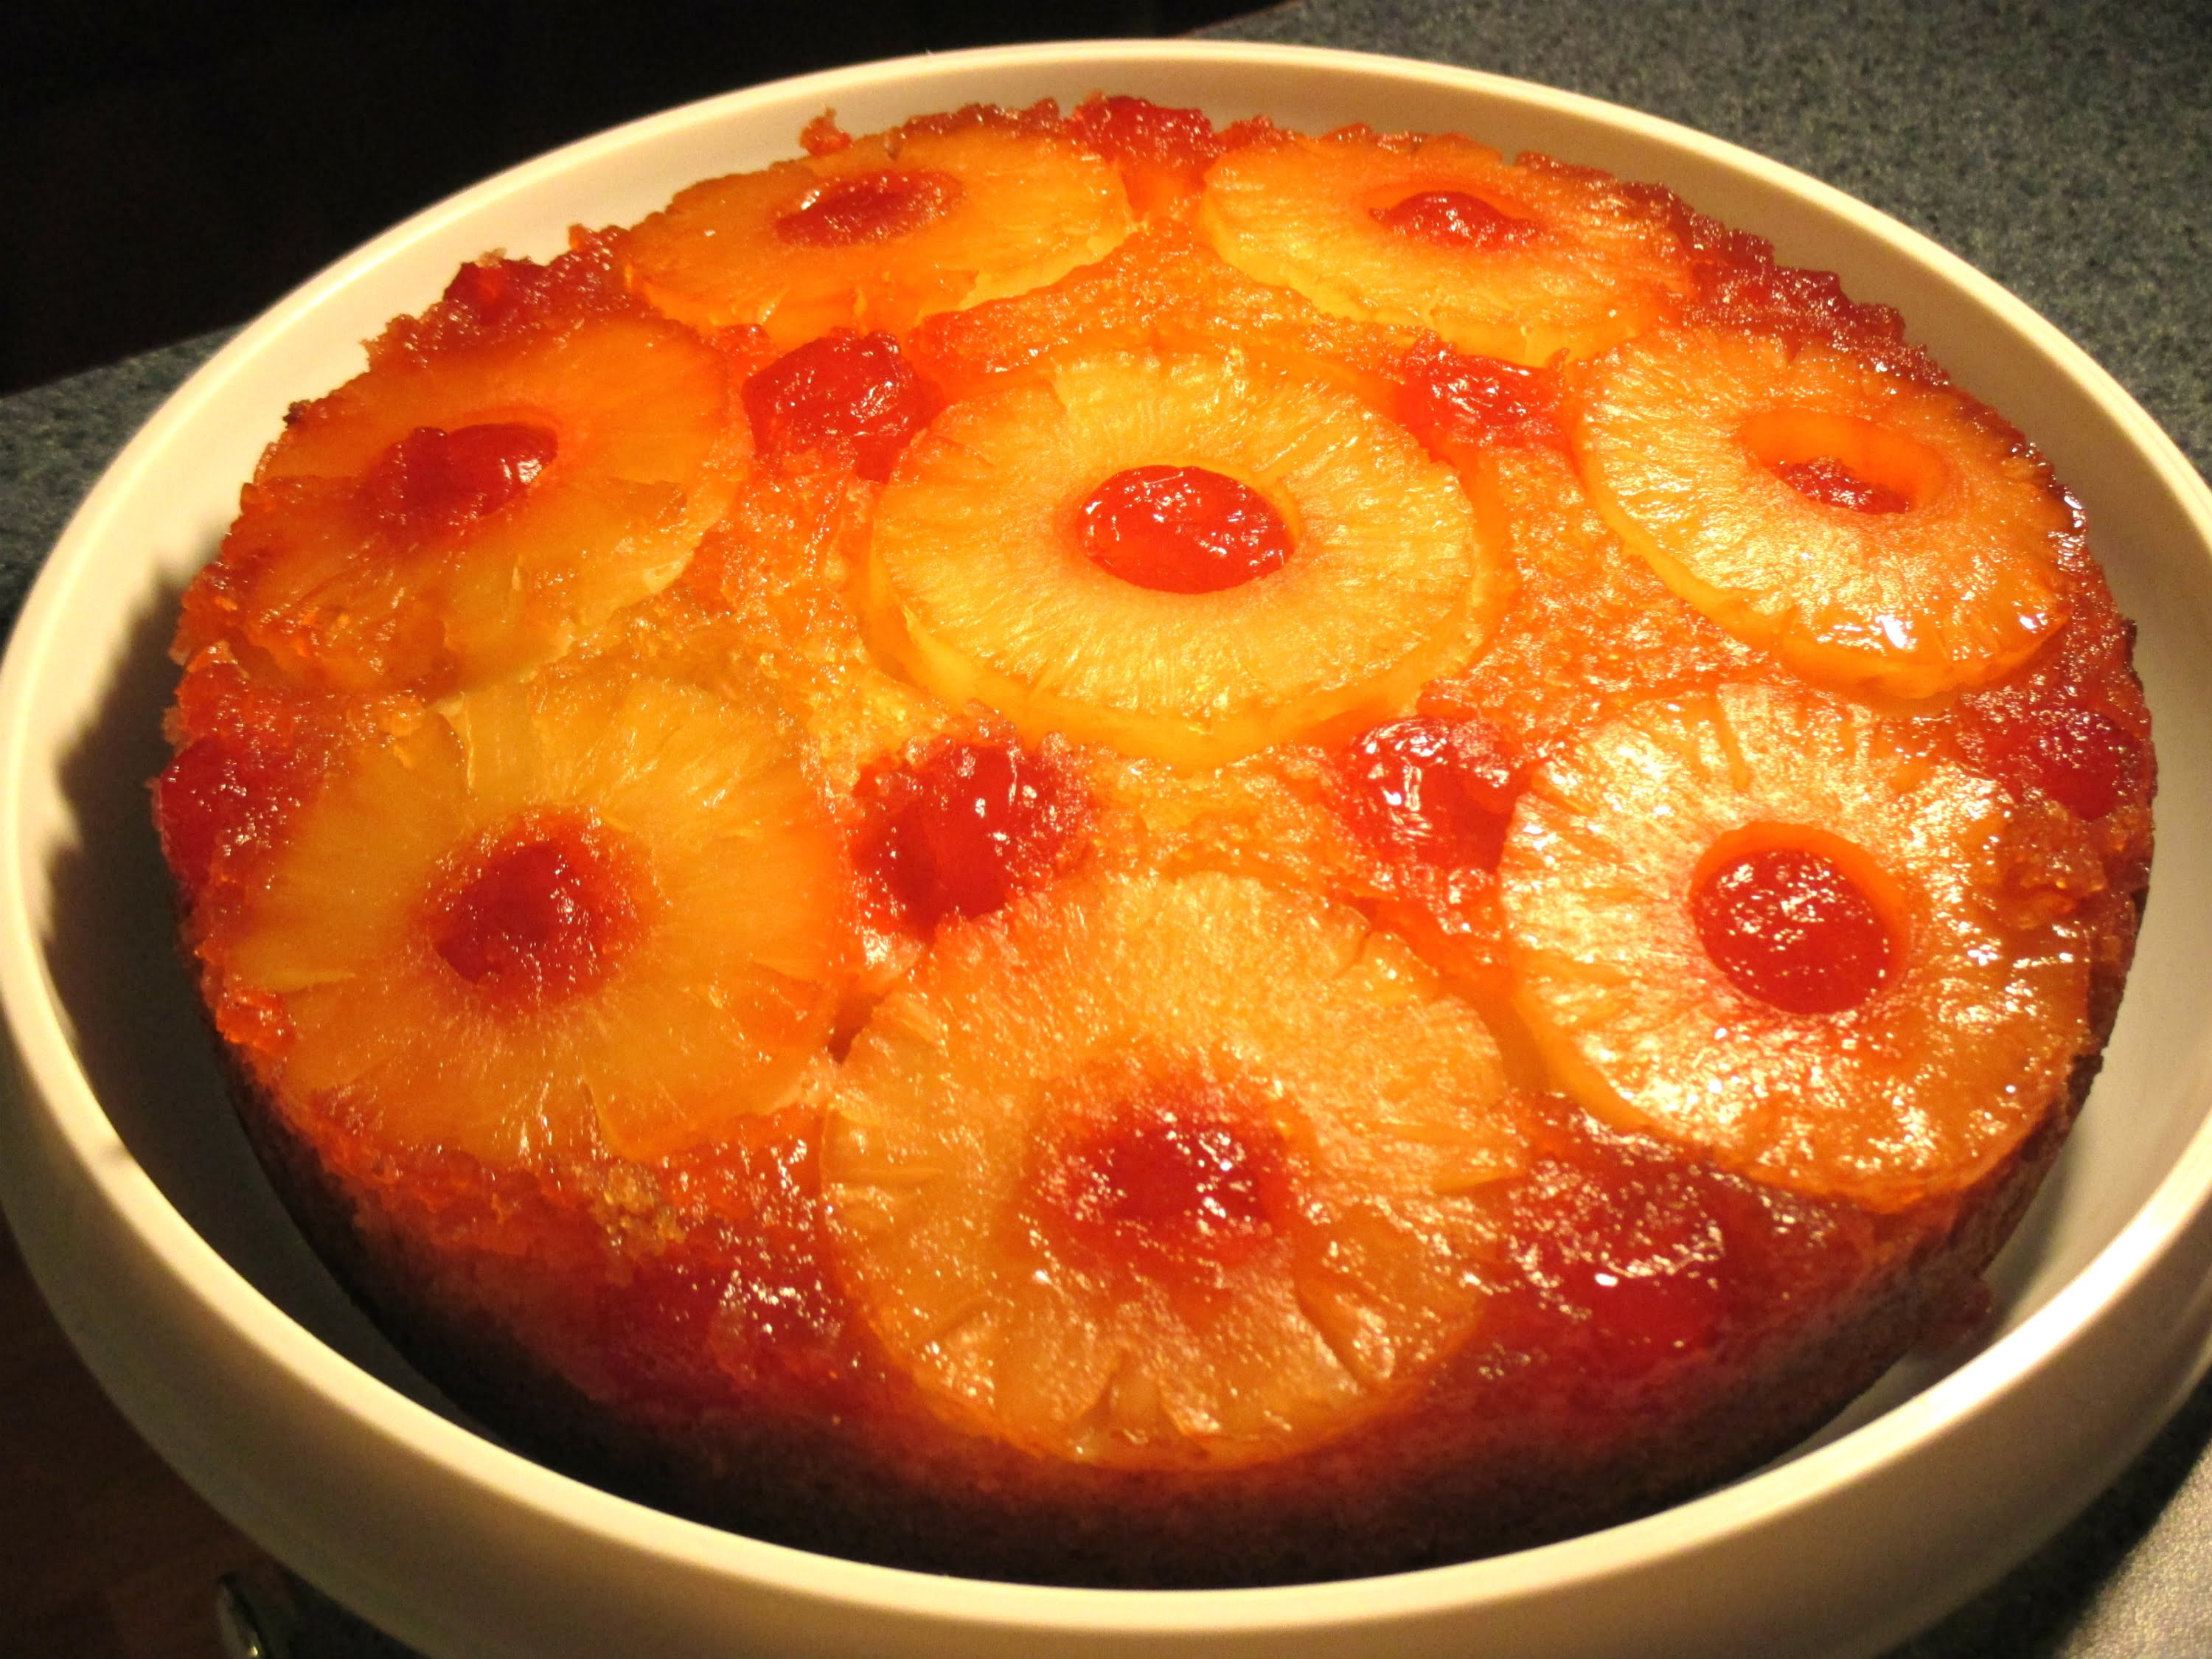 Caribbean Dessert Recipes  HOW TO MAKE REAL JAMAICAN STYLE PINEAPPLE UPSIDE DOWN CAKE